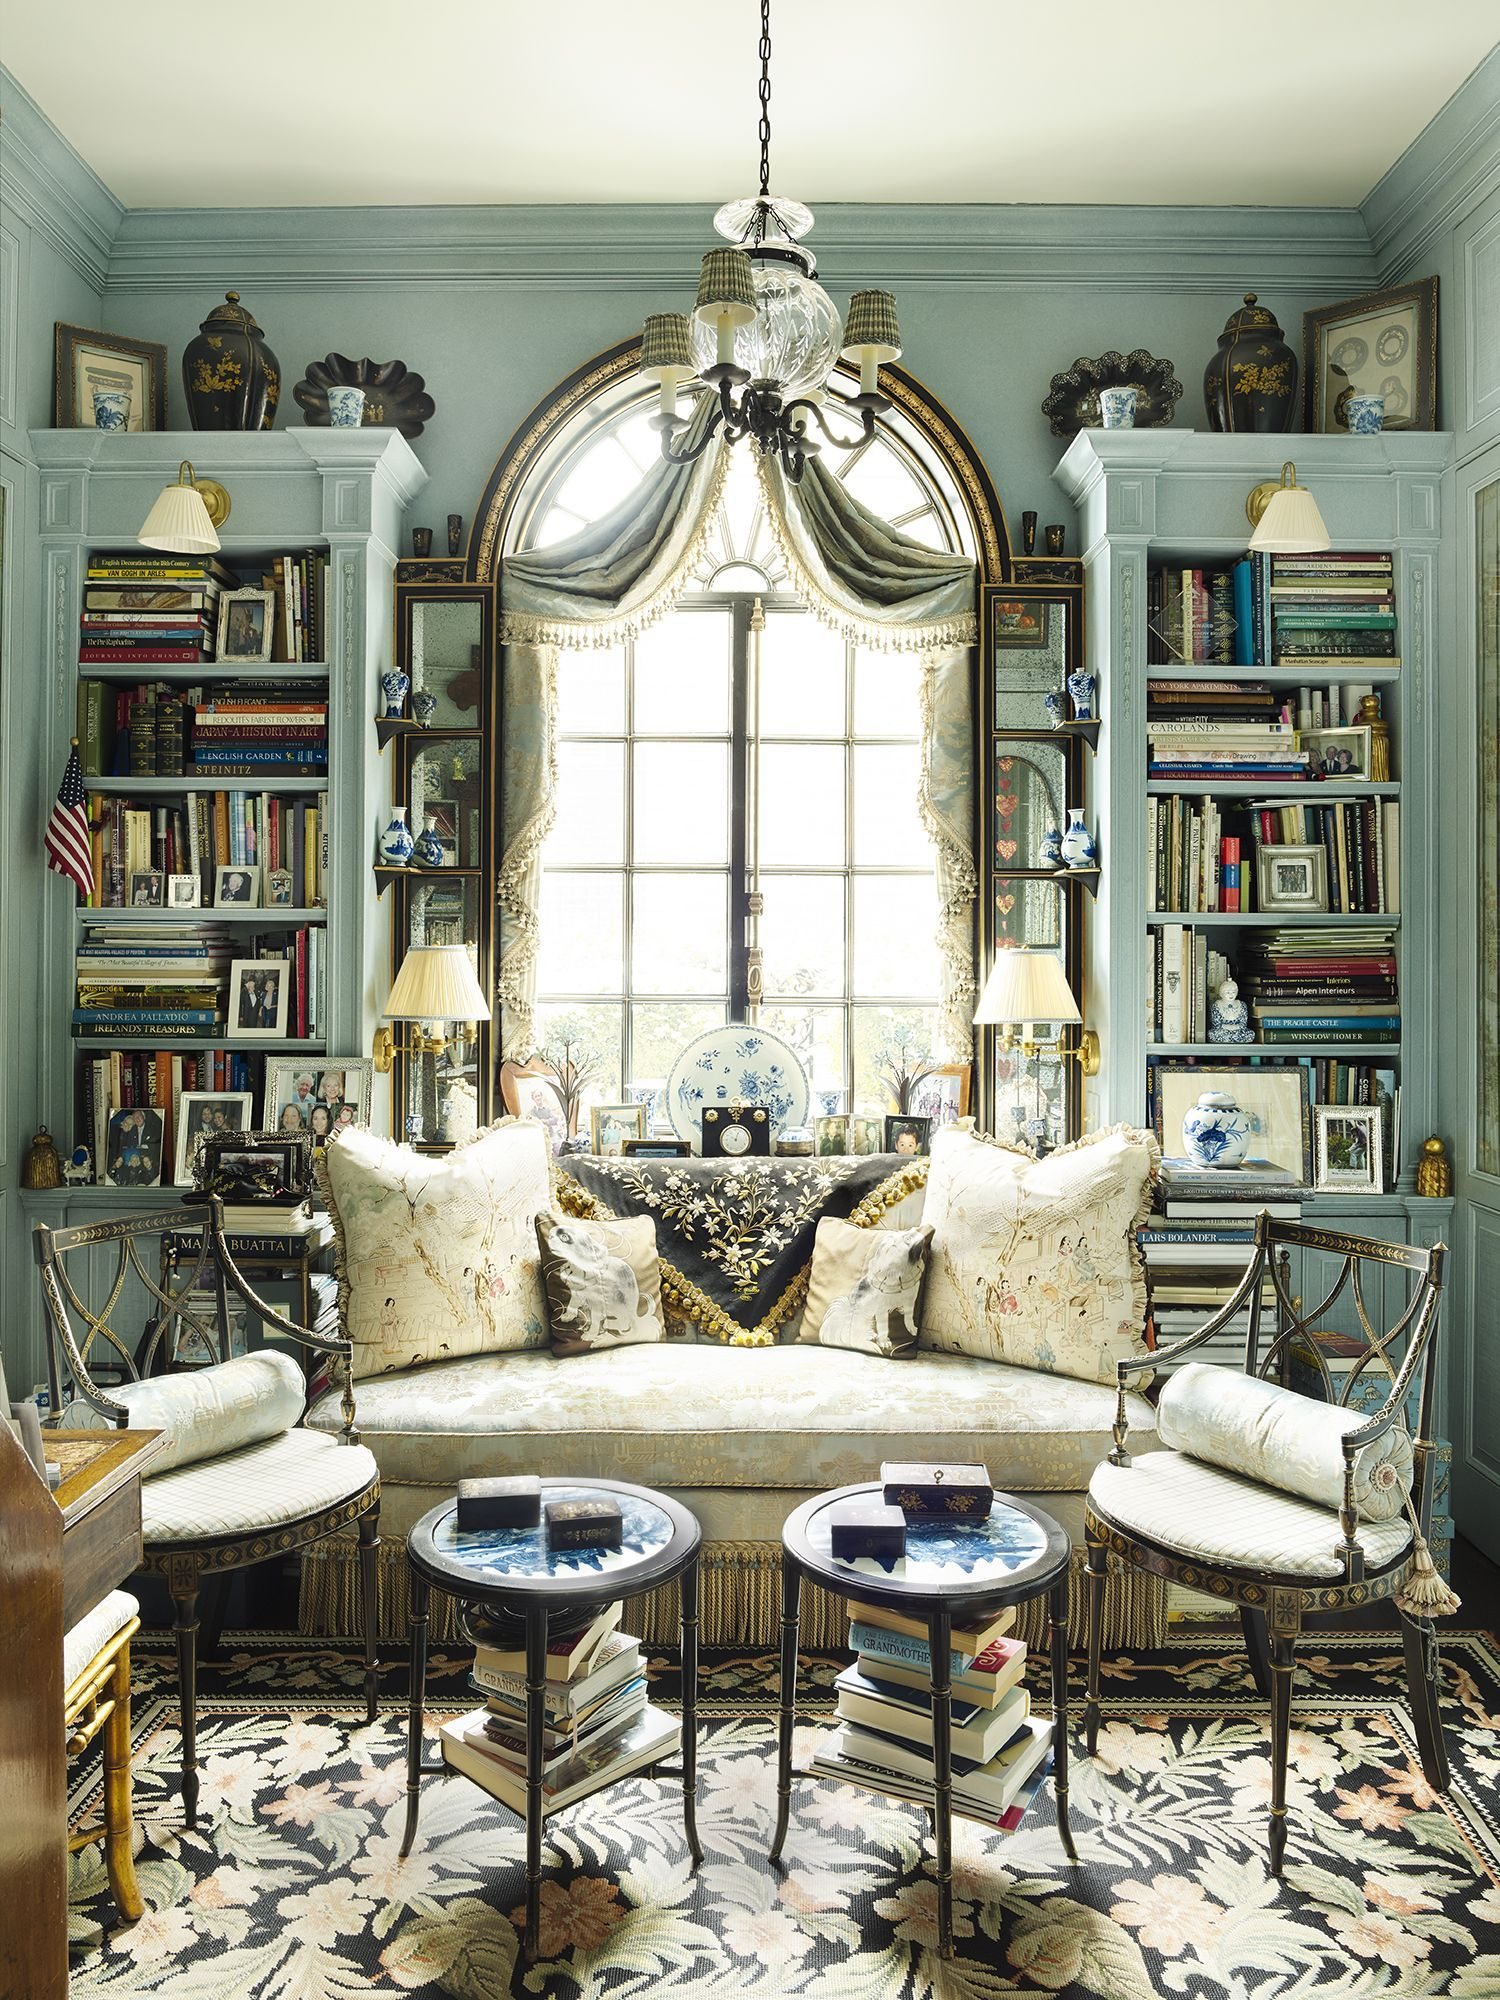 Friederike kemp biggs decorator and designer elledecor com